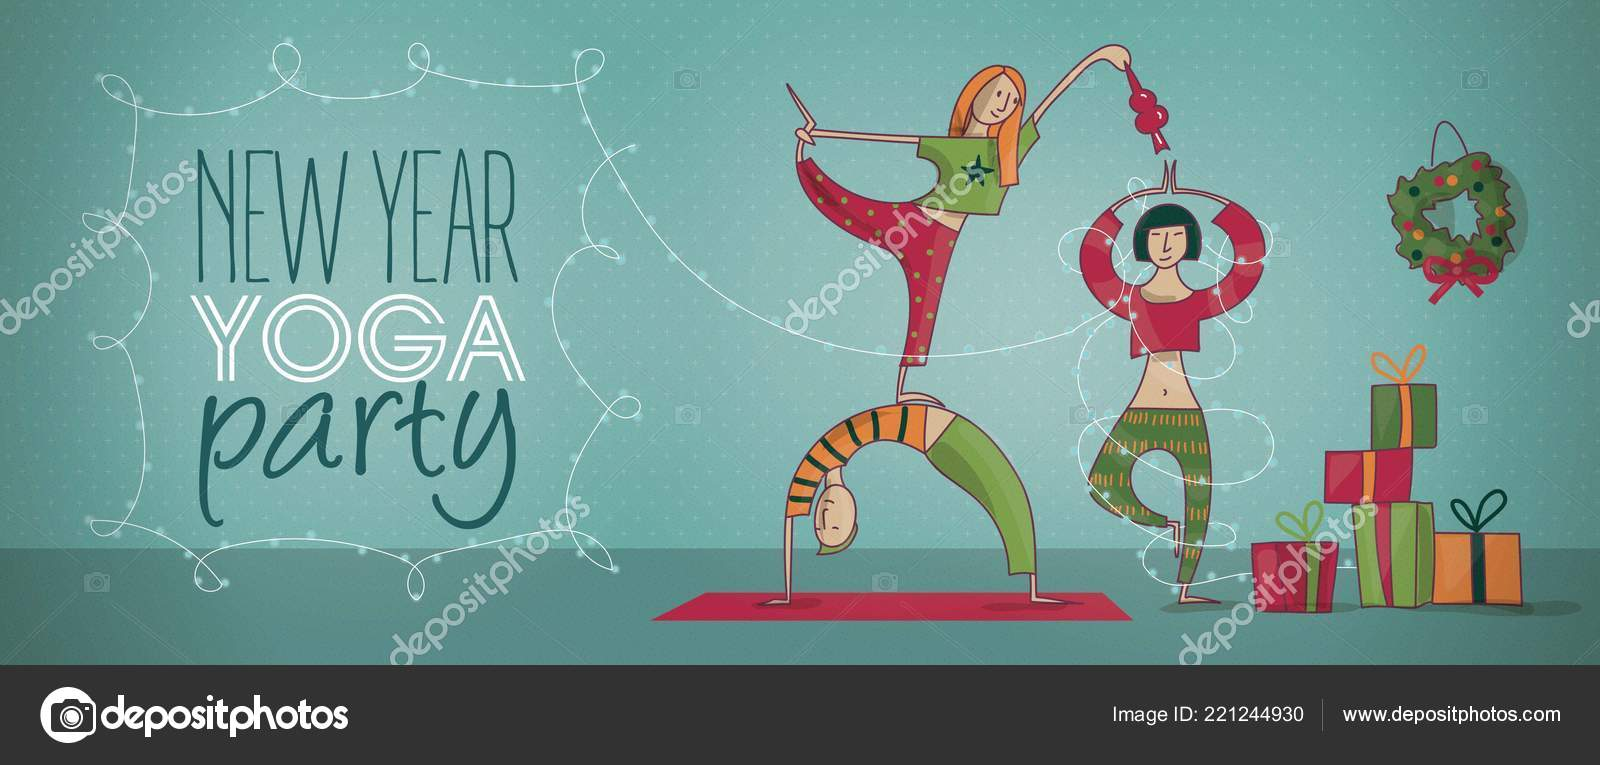 Yoga Banner New Year Yoga Party Banner Vector Illustration Stock Vector C Aly Ko 221244930